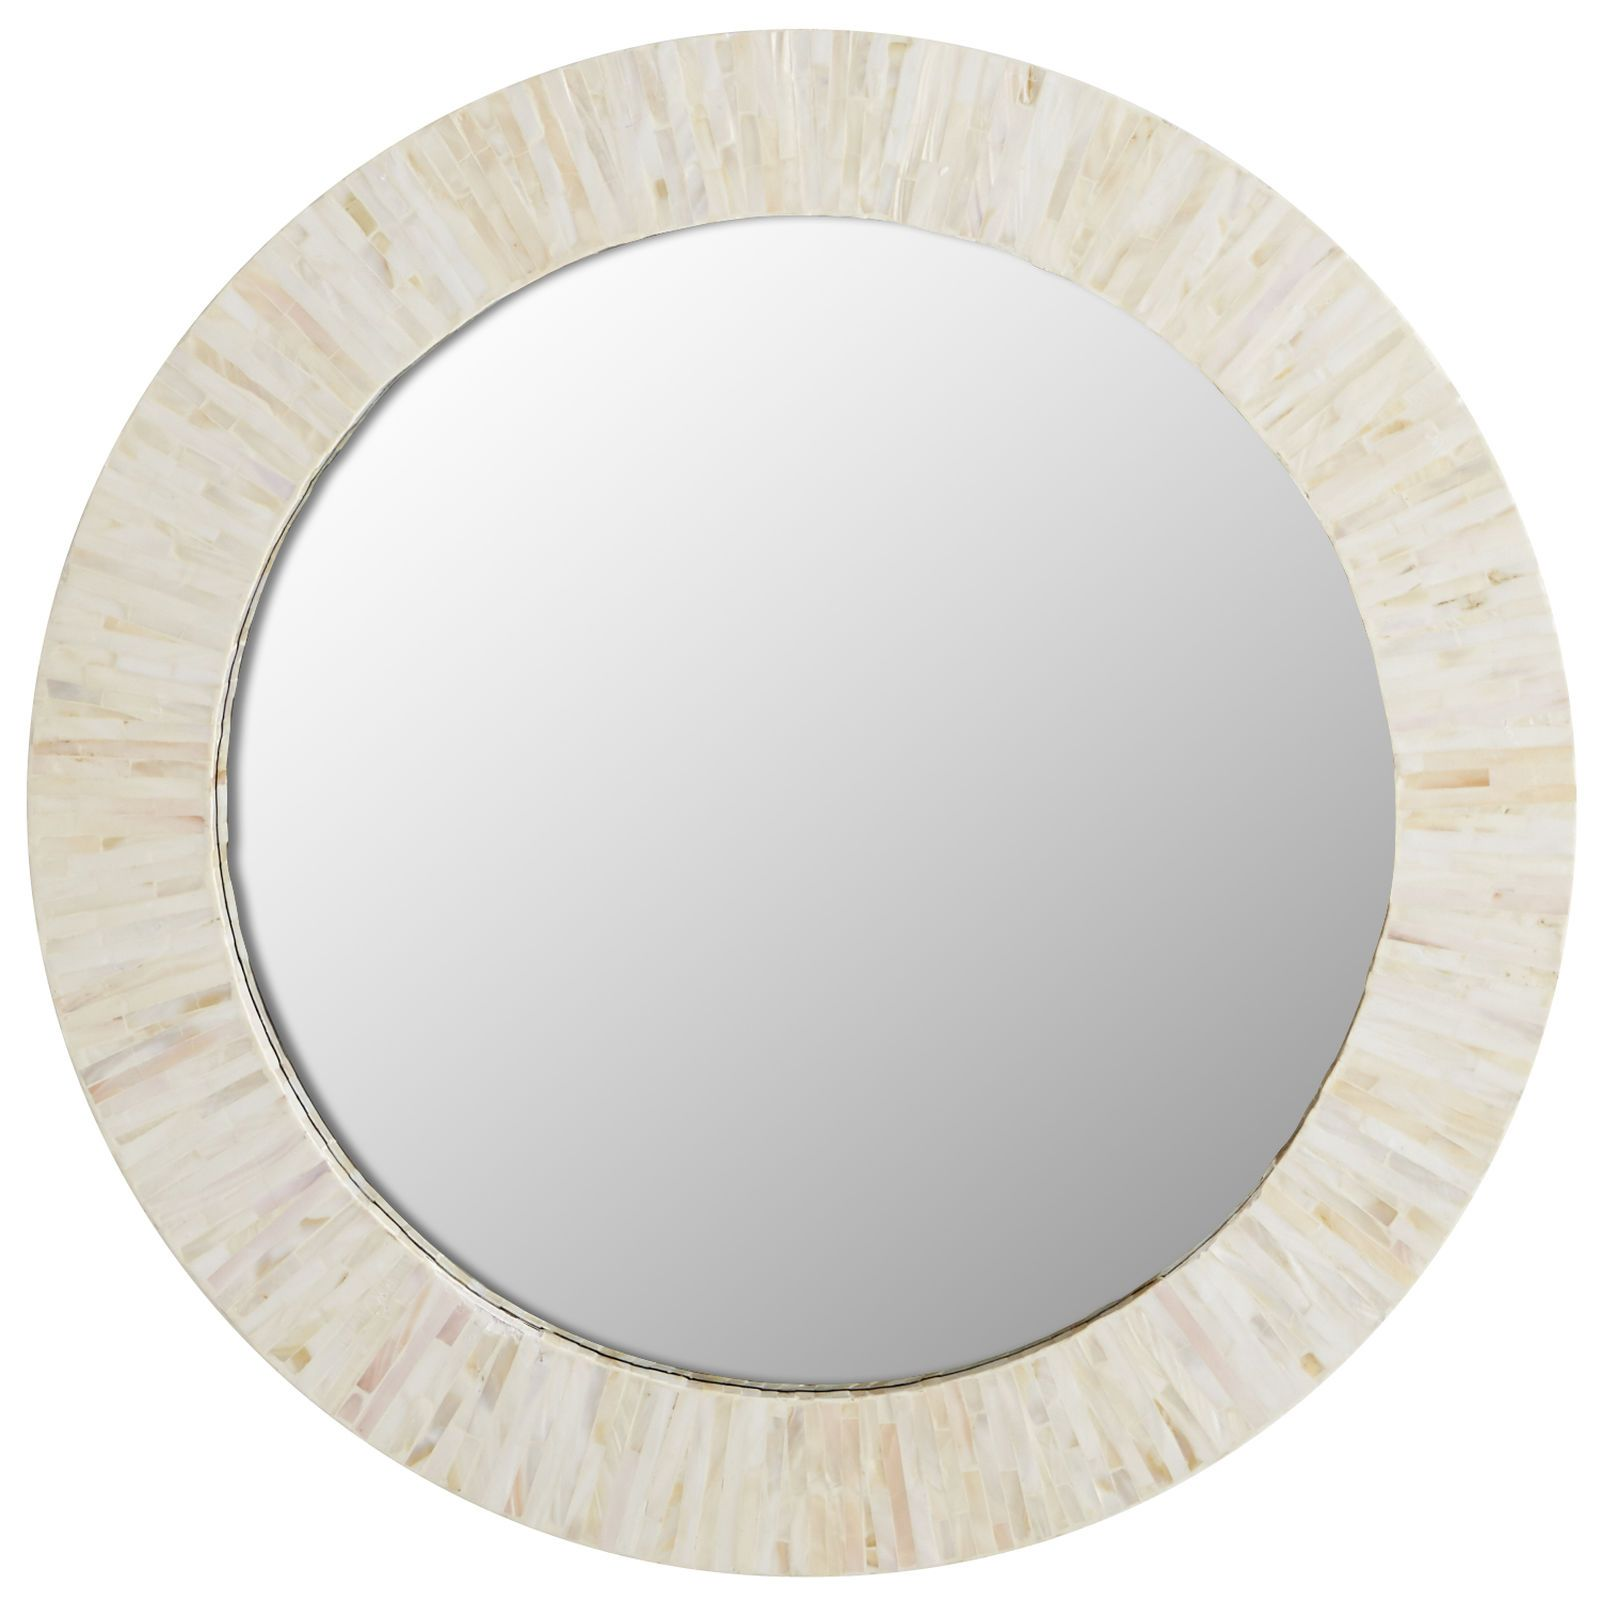 """Ivory Mother Of Pearl Floor Vase In 2019: Ivory Mother-of-Pearl 24"""" Round Mirror In 2019"""